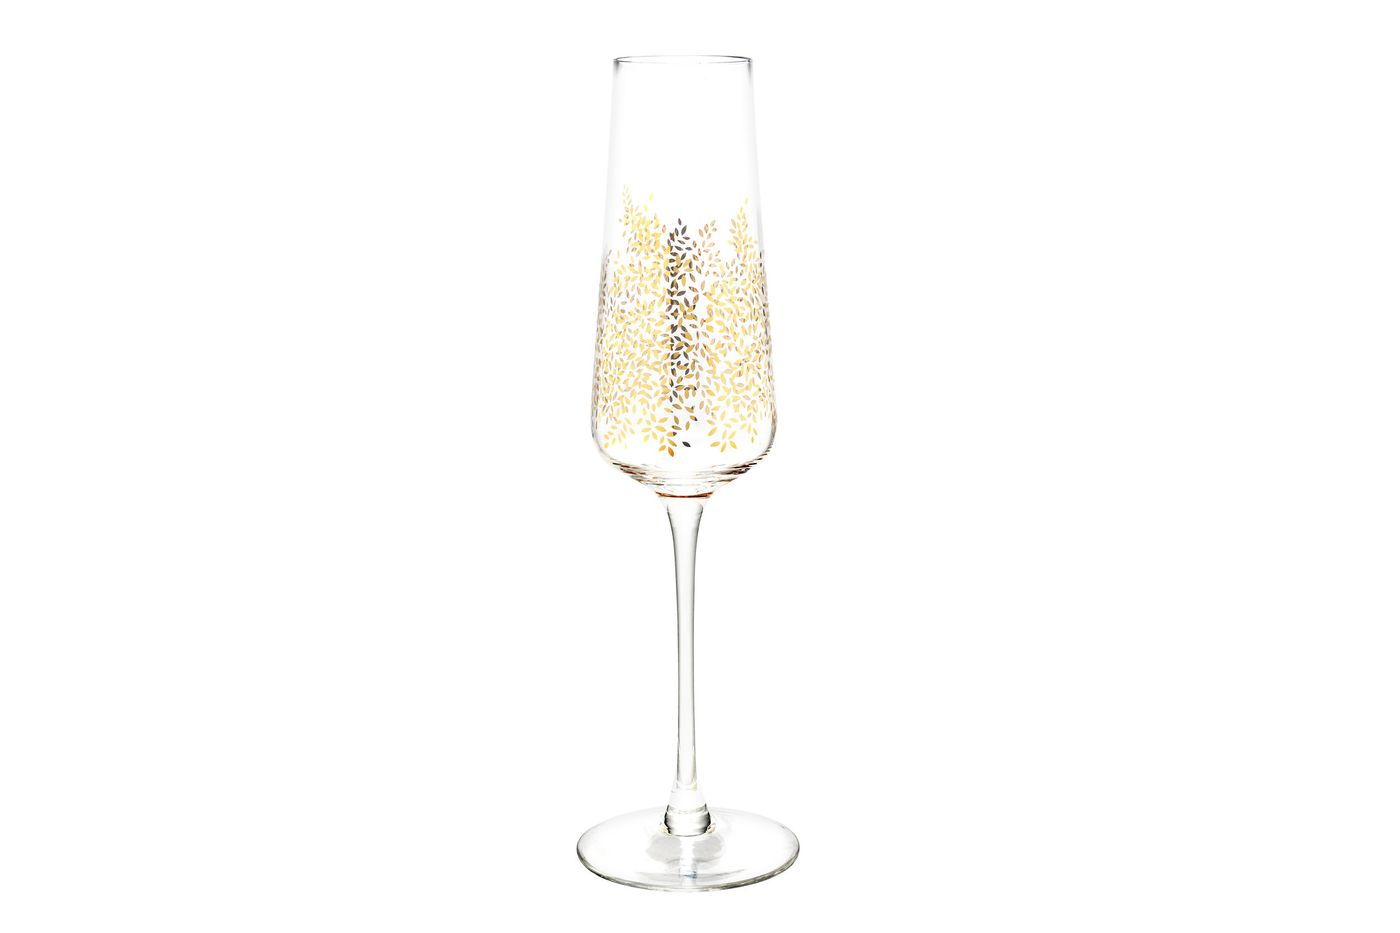 Sara Miller London for Portmeirion Chelsea Collection Set of 4 Flutes Chelsea Gold Leaf 0.44l thumb 2